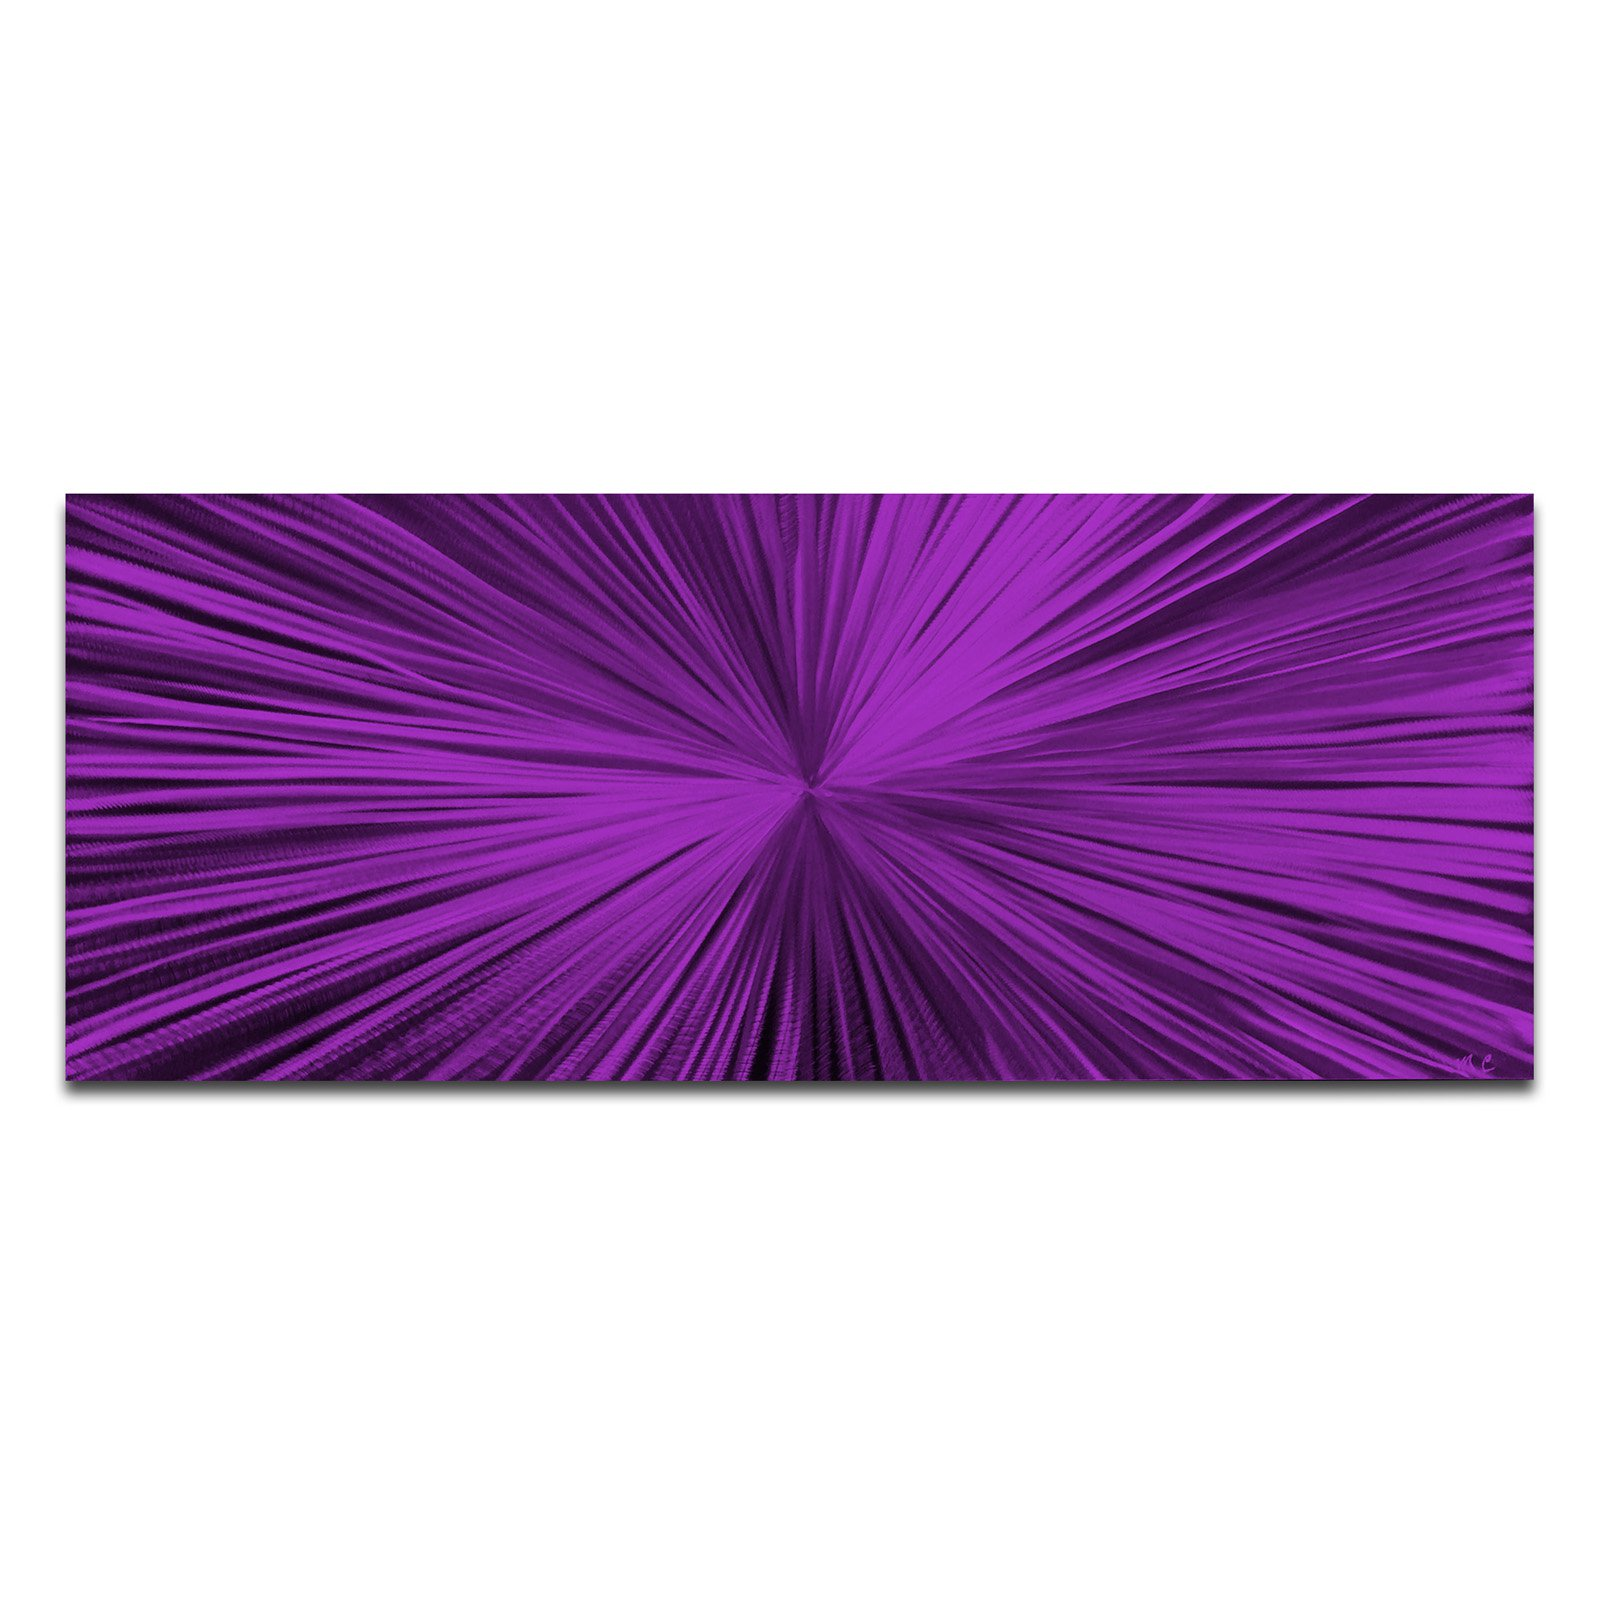 Metal Art Studio Starburst Metal Wall Art